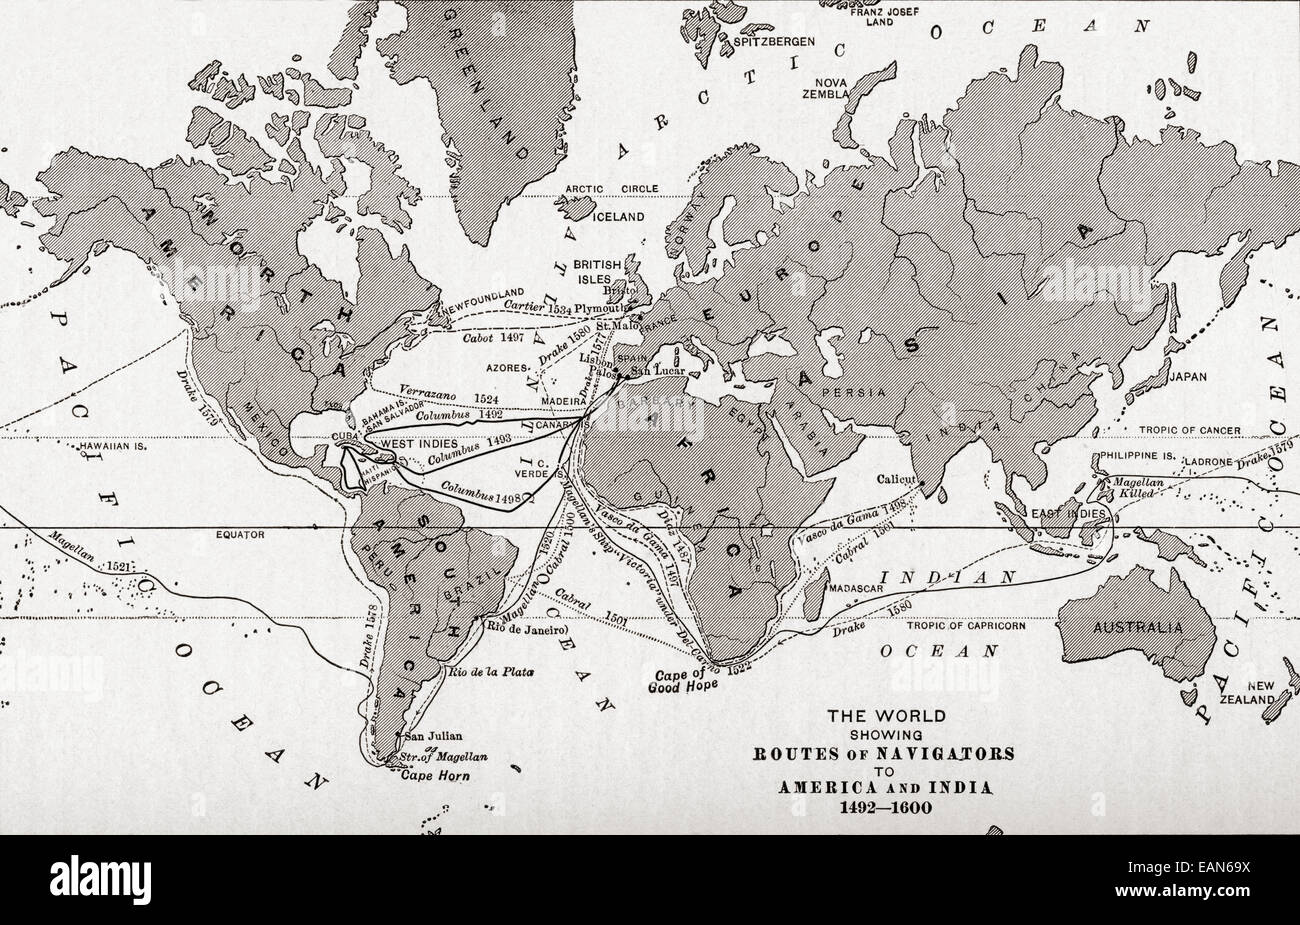 Map of the world showing the routes of navigators to America and ...